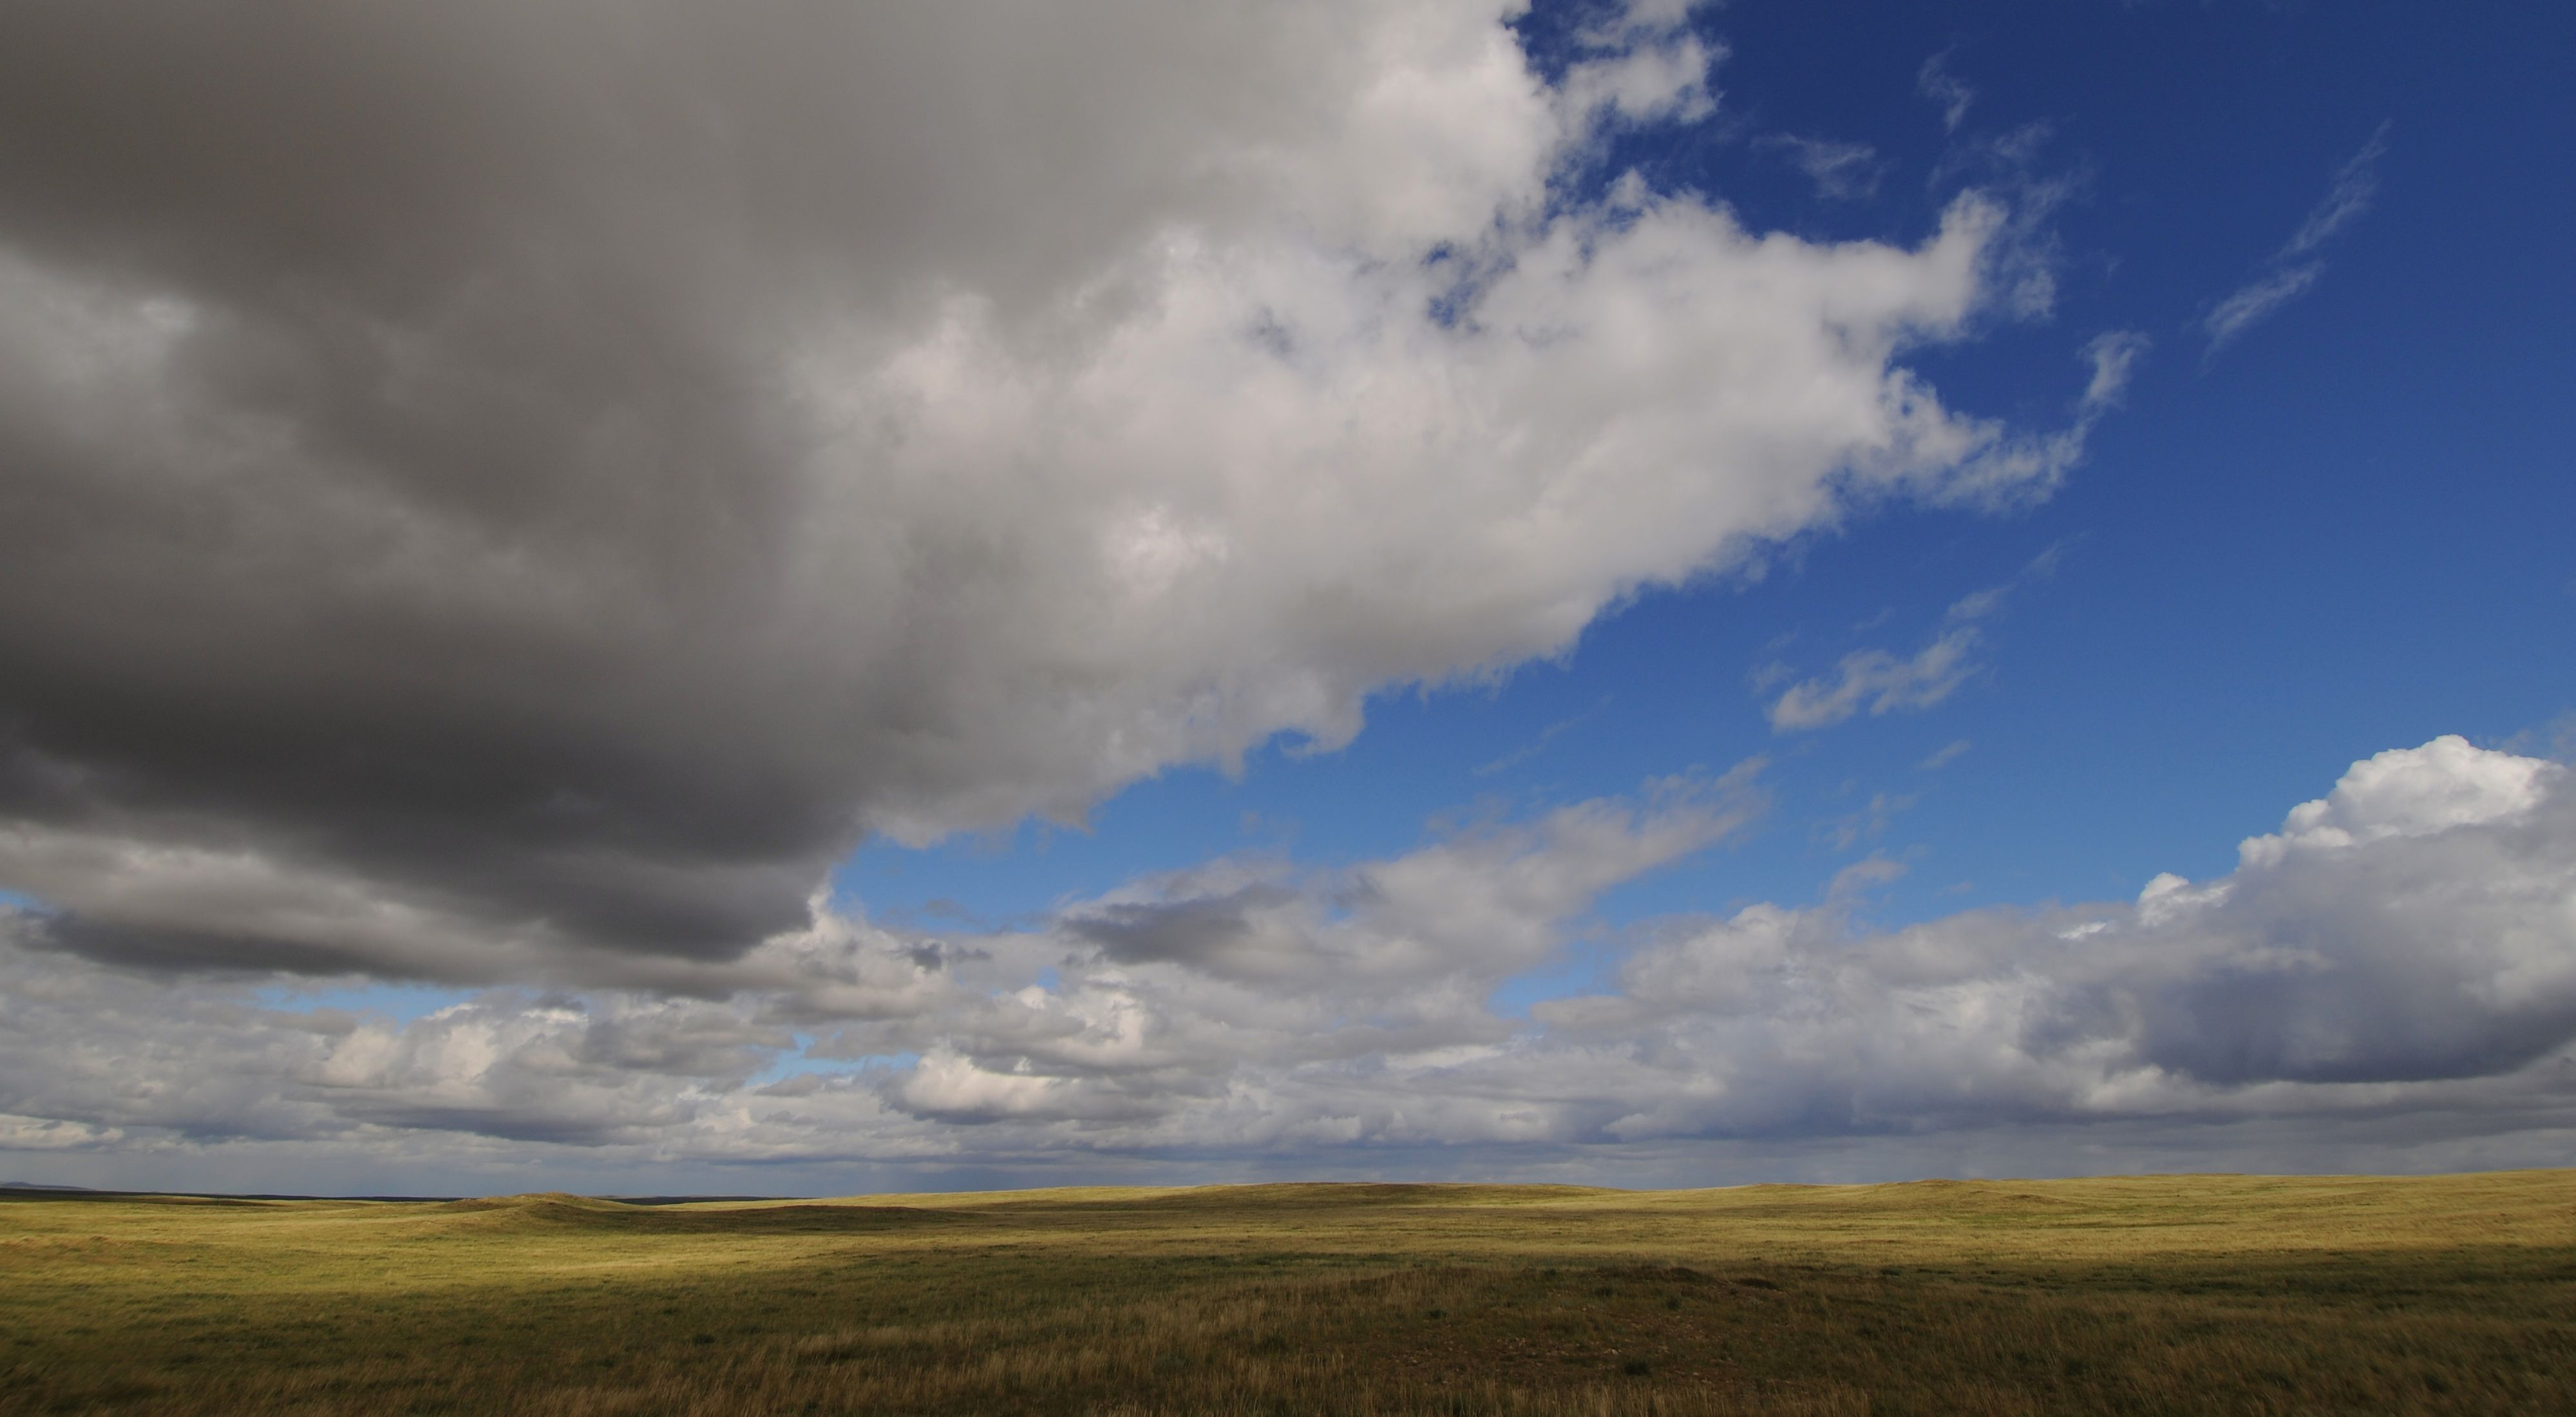 Storm clouds over a vast and empty grassland.